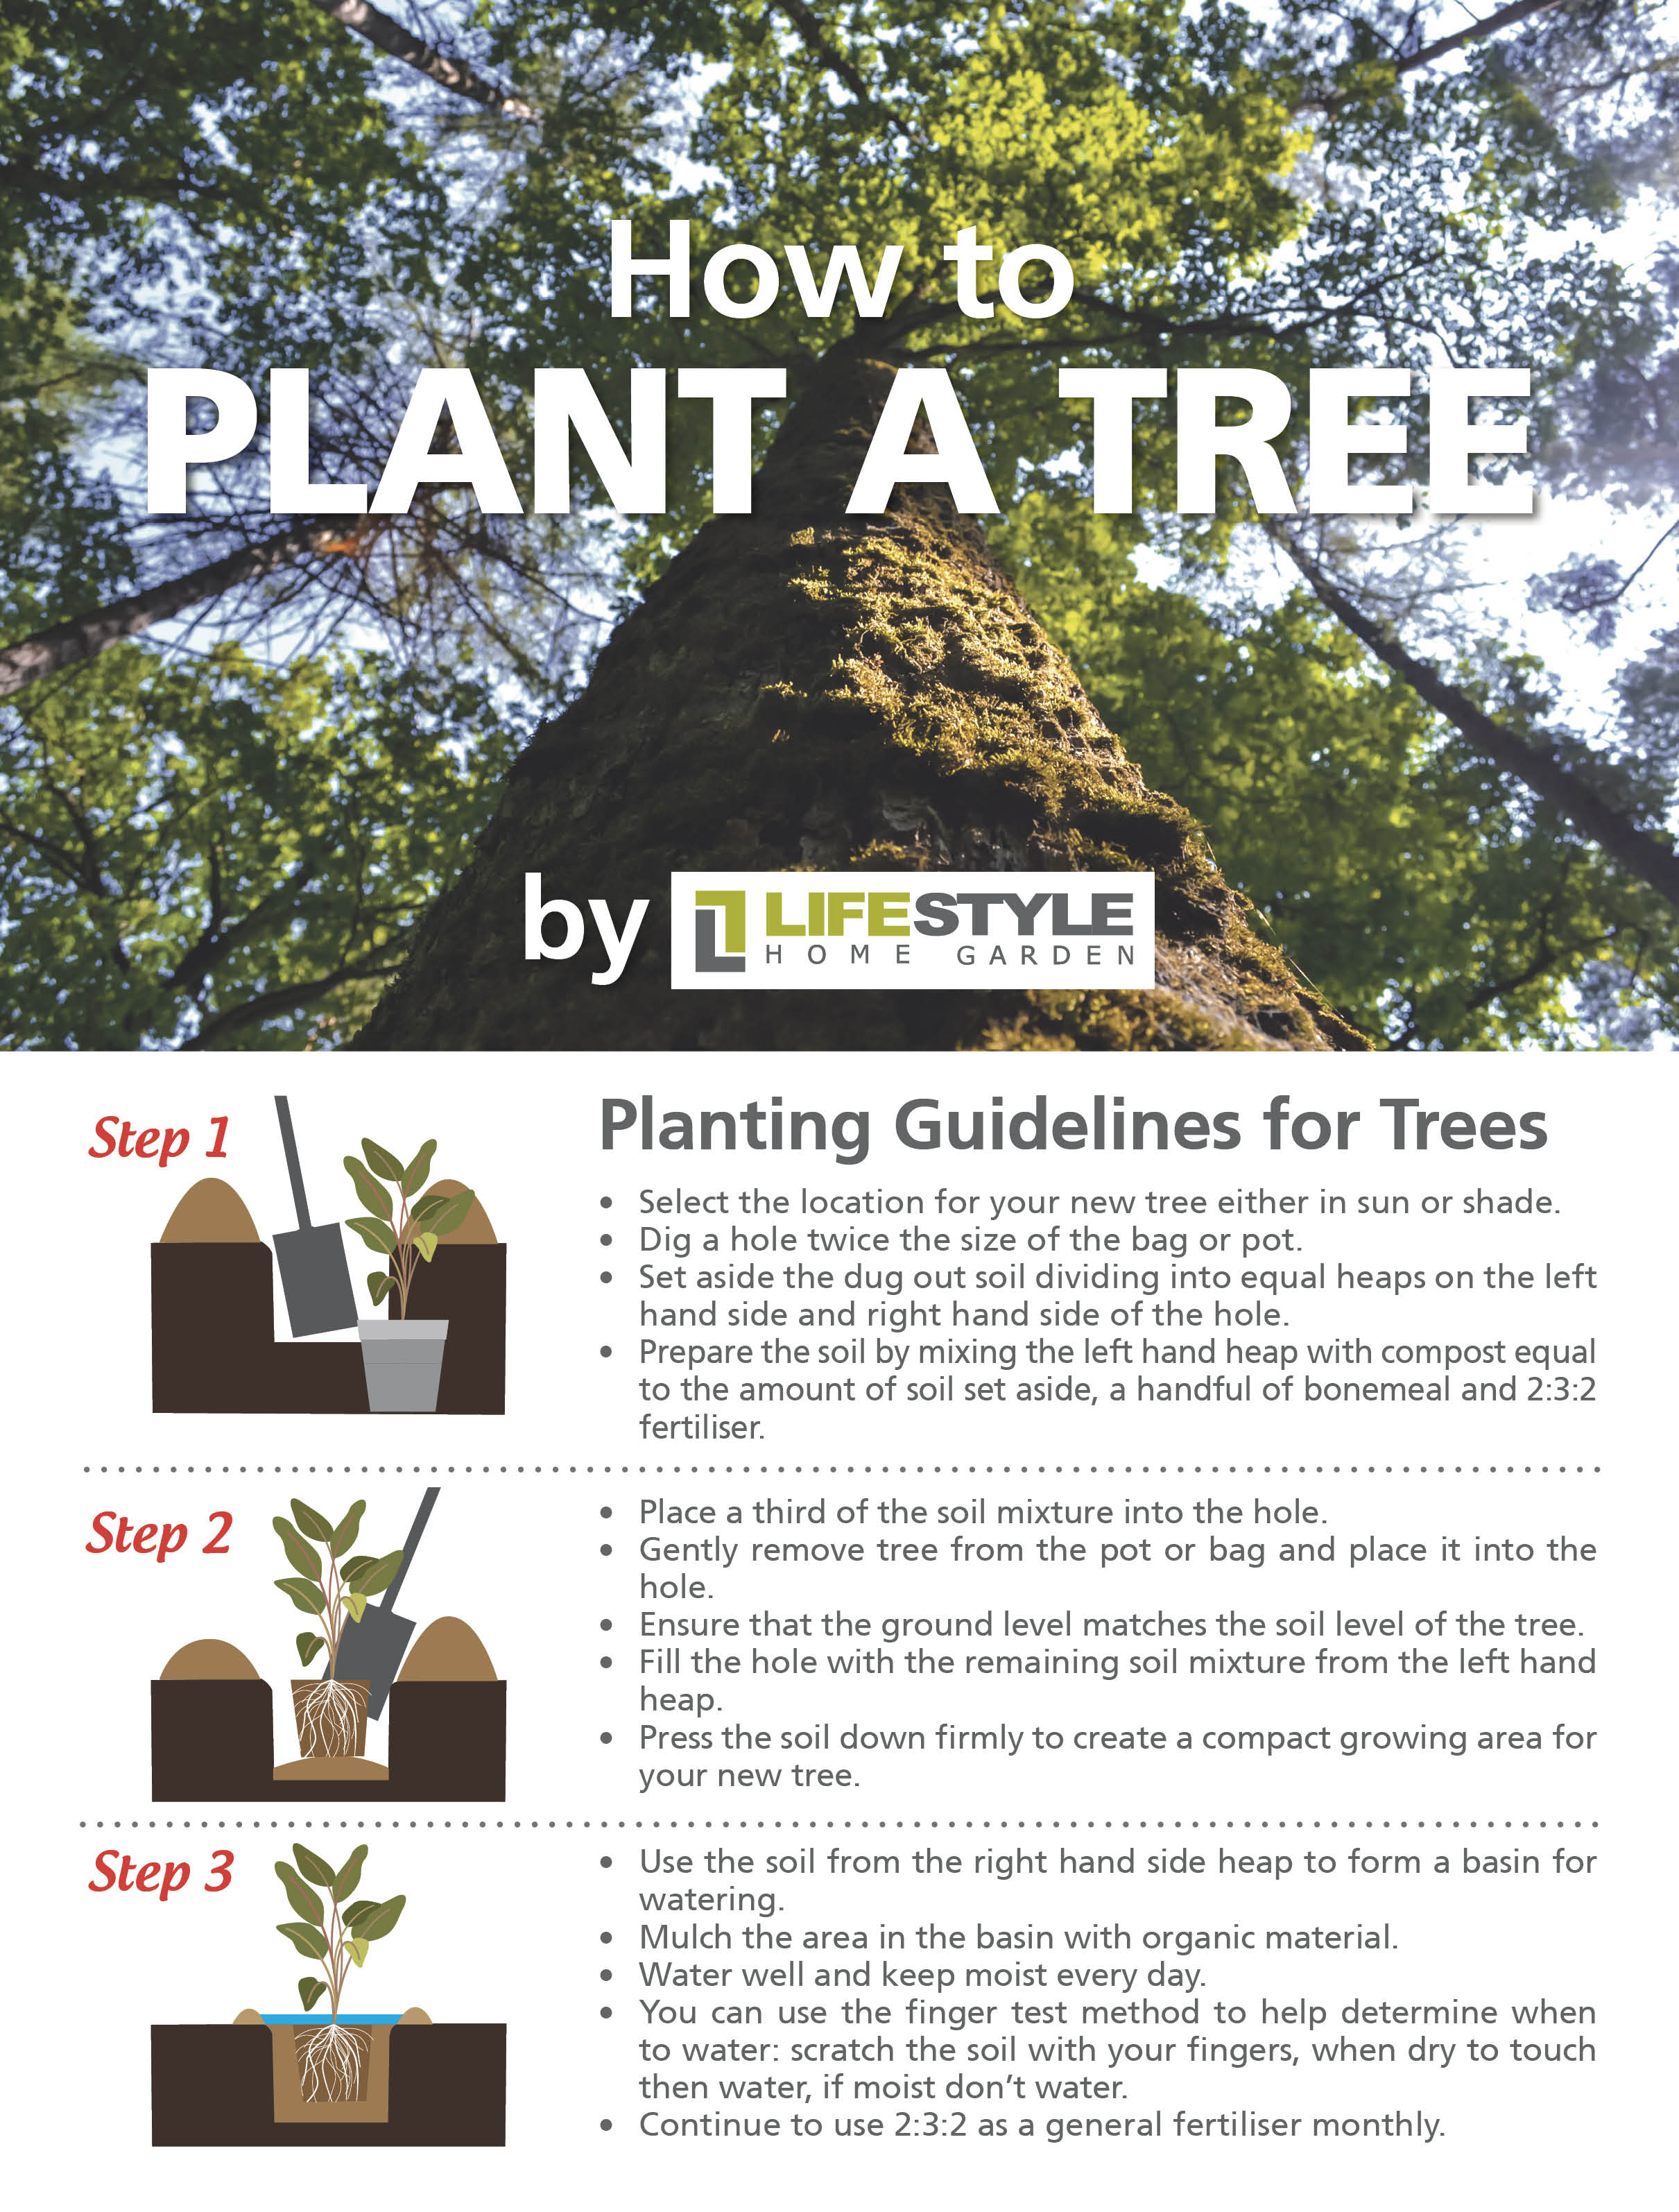 How to Plant a Tree by Lifestyle Home Garden, nursery and plant shop Johannesburg